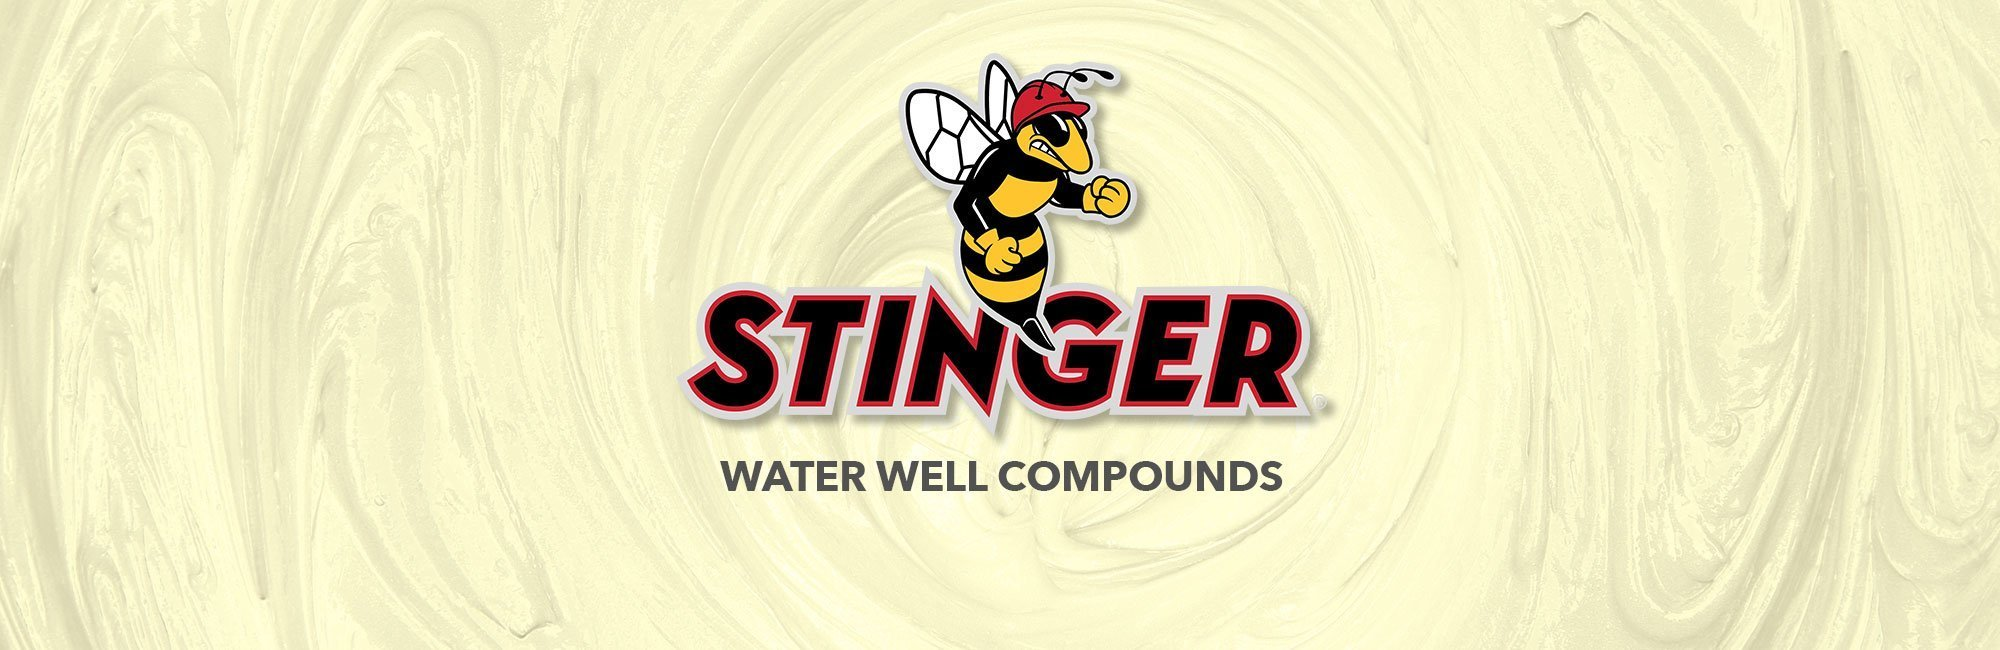 Water Well Premium Compounds Slide